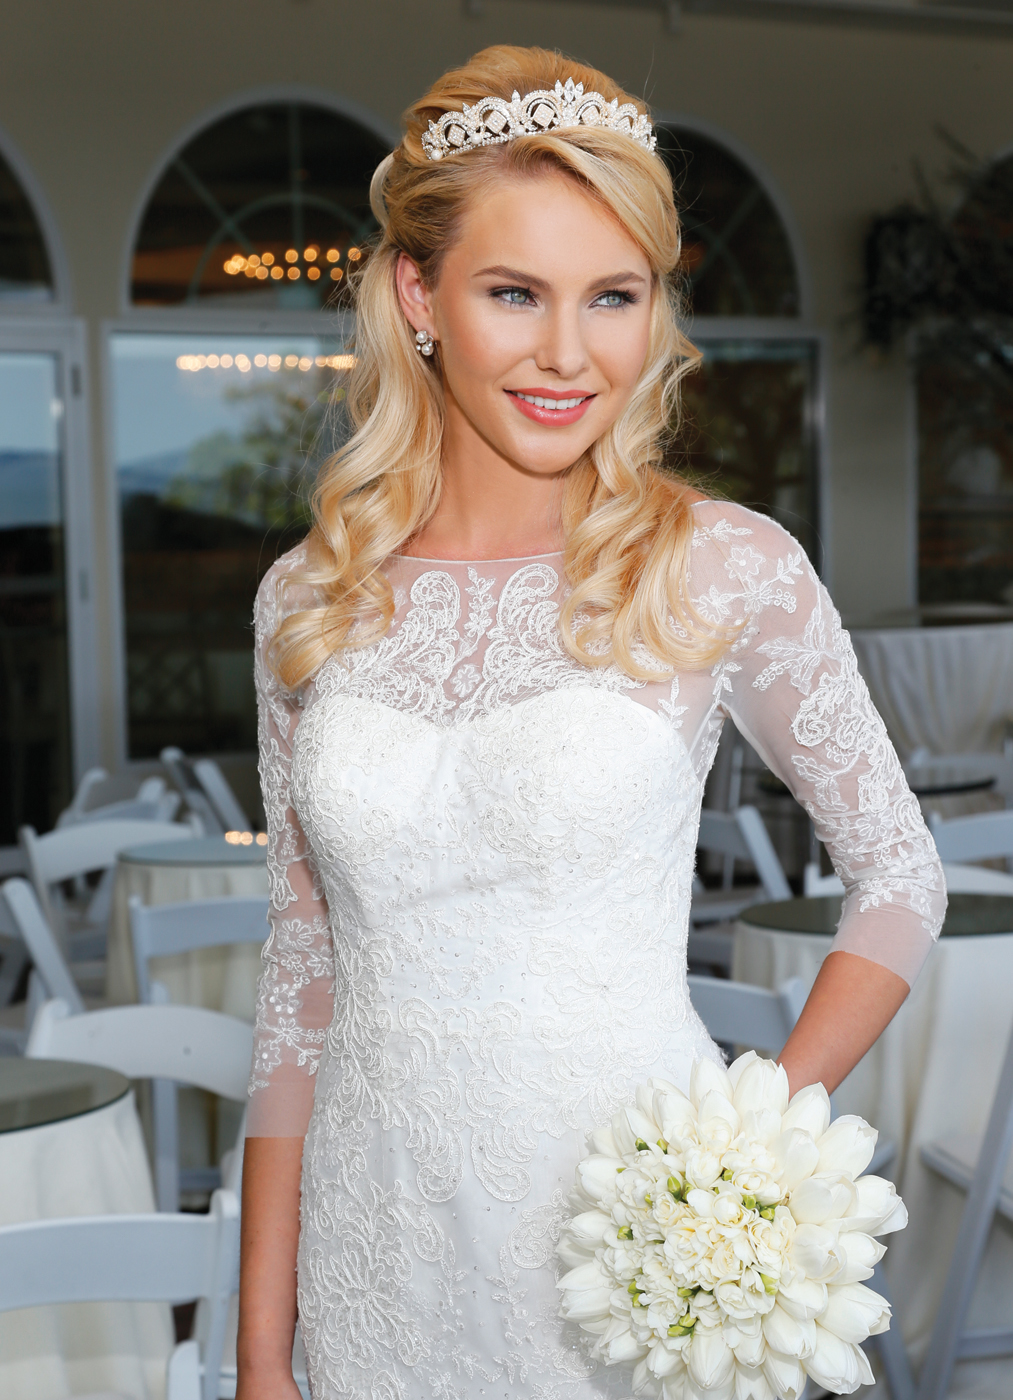 Makeup & Hair: The Bridal Suite NY. Gown: Oleg Cassini at David's Bridal (CWG710 $1250). Bouquet: Ariston Flowers.